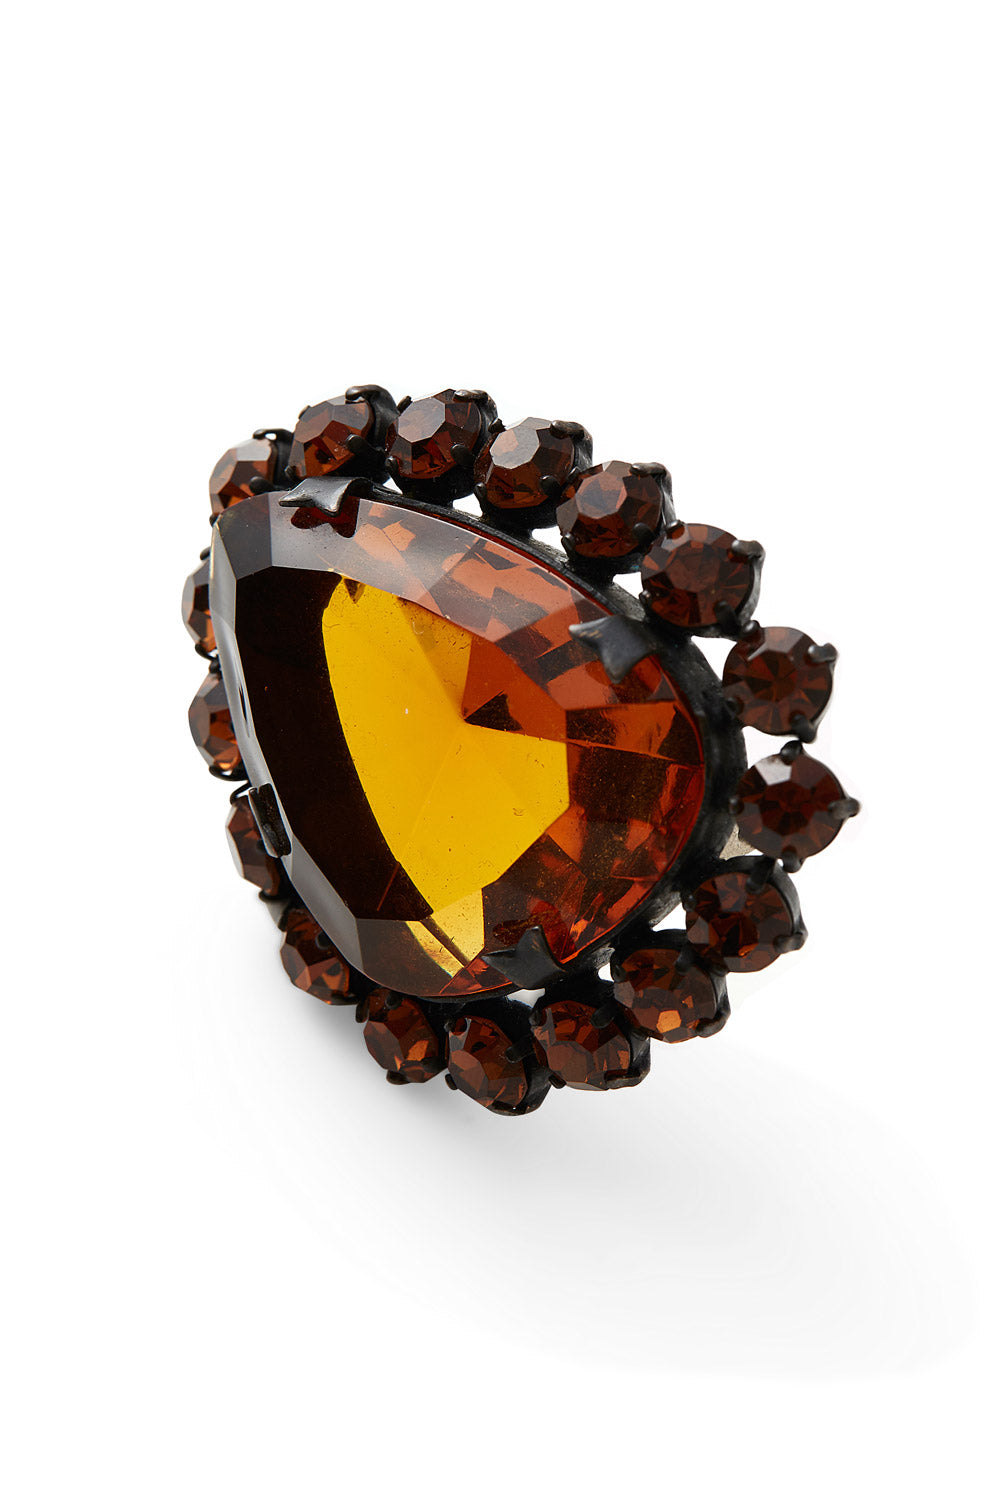 Vintage<br>1980's/90's amber faceted glass brooch